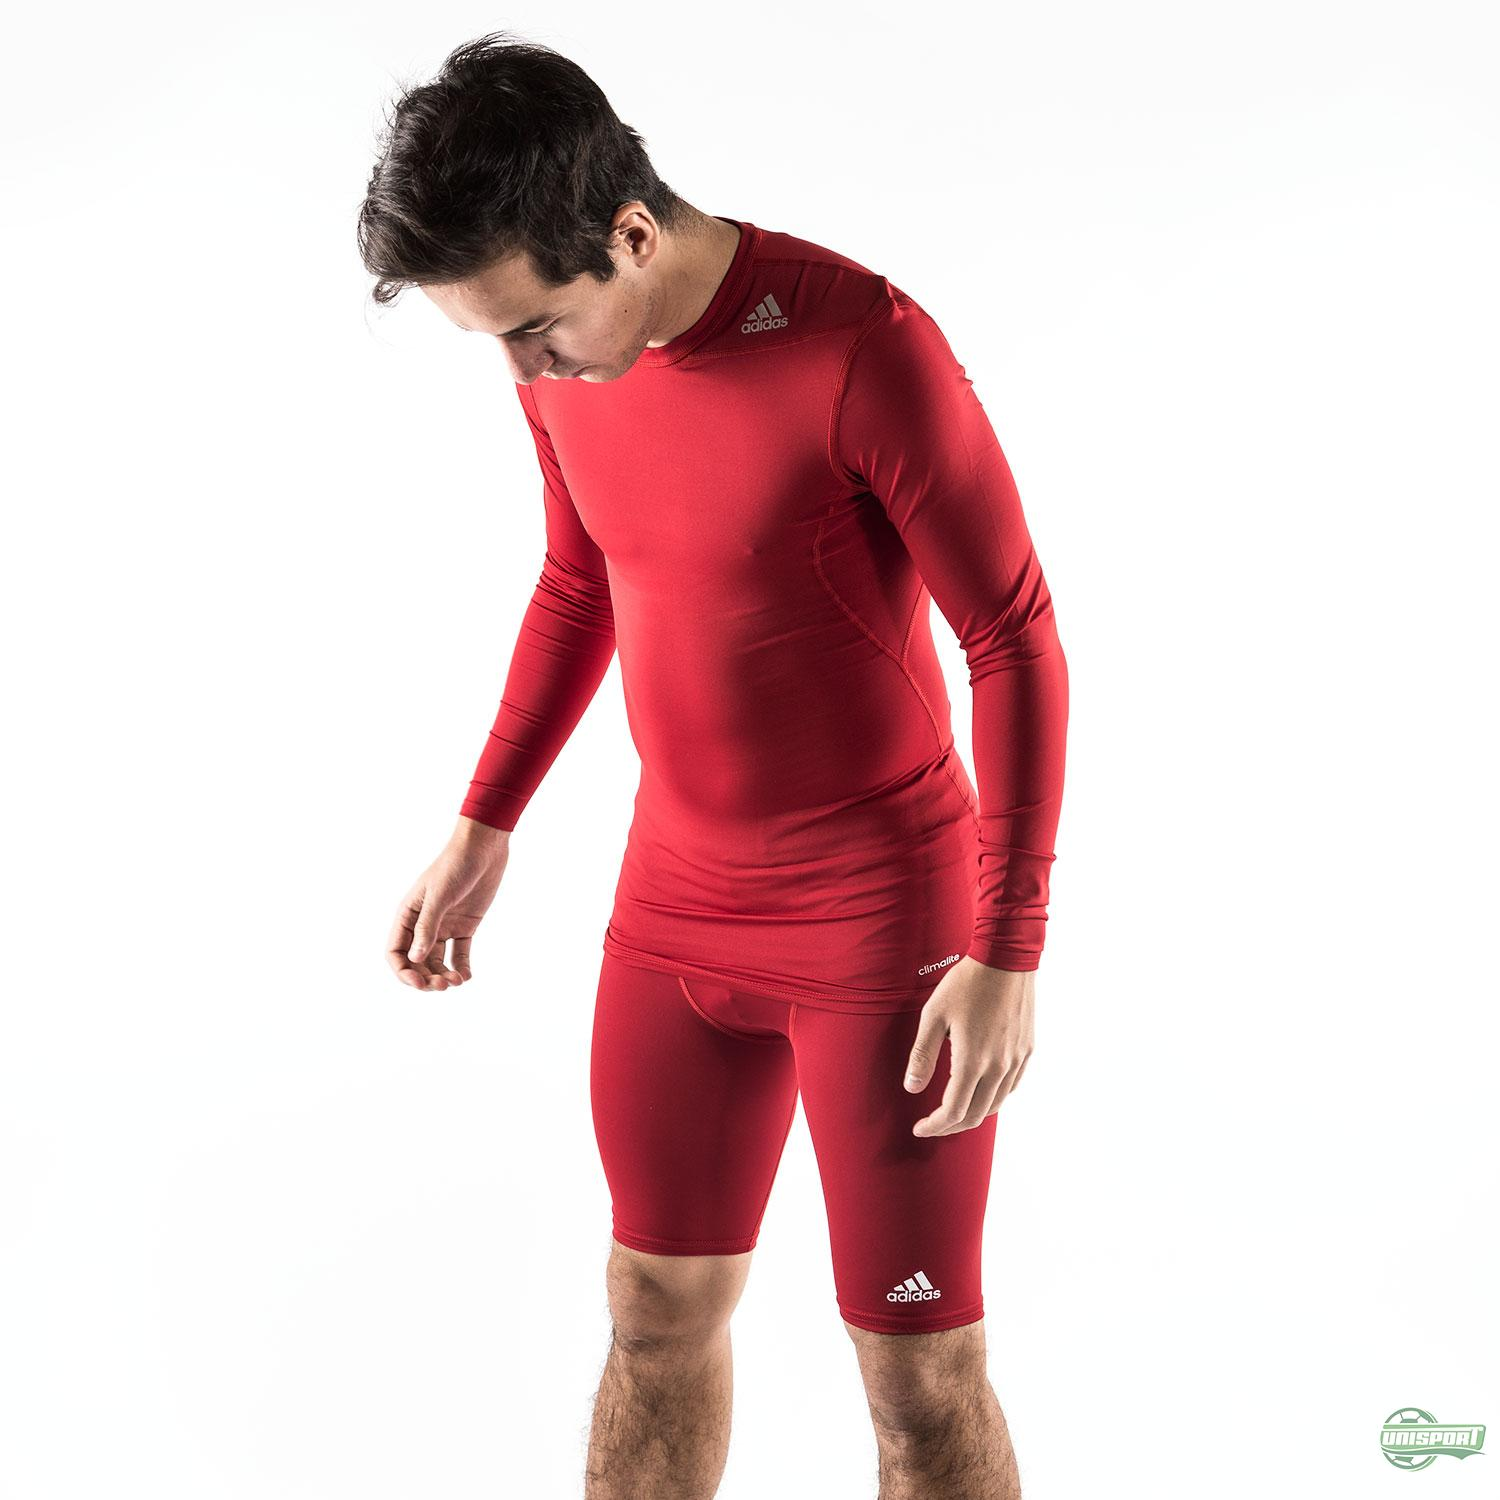 3b8ae273b0 Stay warm during winter - The best baselayer for football